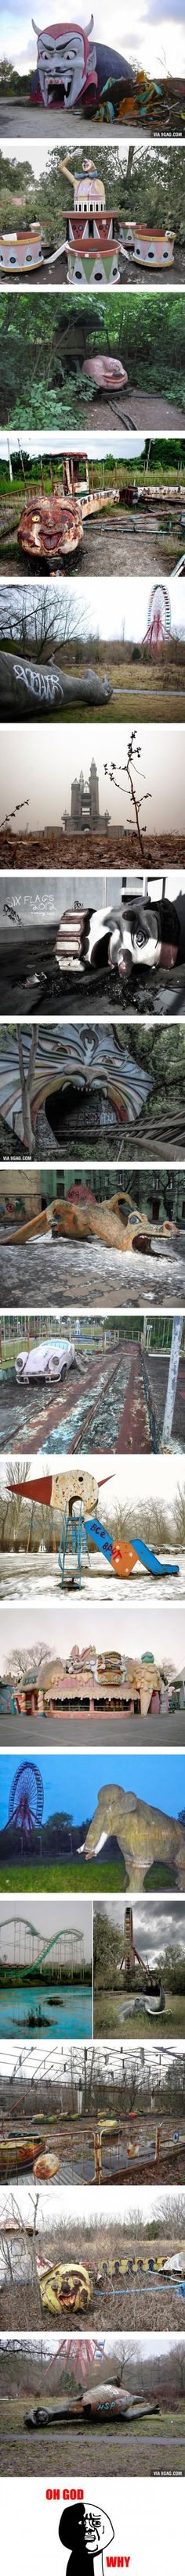 Abandoned Amusement Parks That Look Like Your Childhood Nightmare